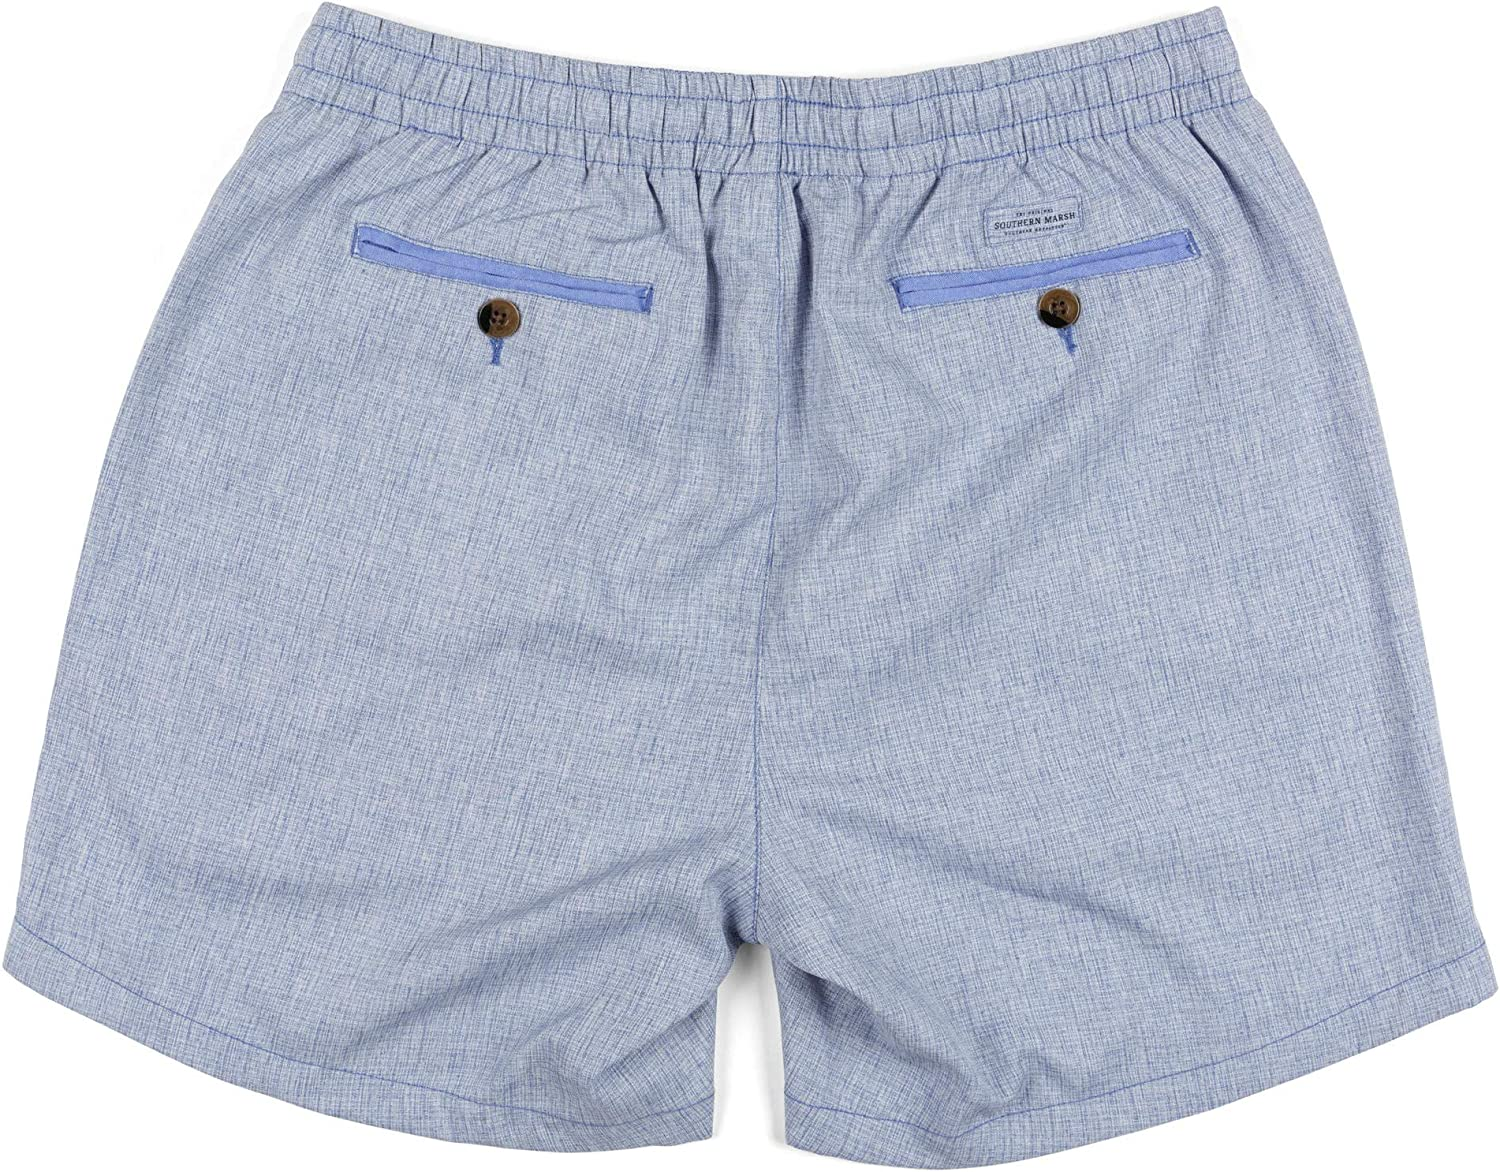 Southern Super intense SALE Marsh Crawford Shorts trust Casual